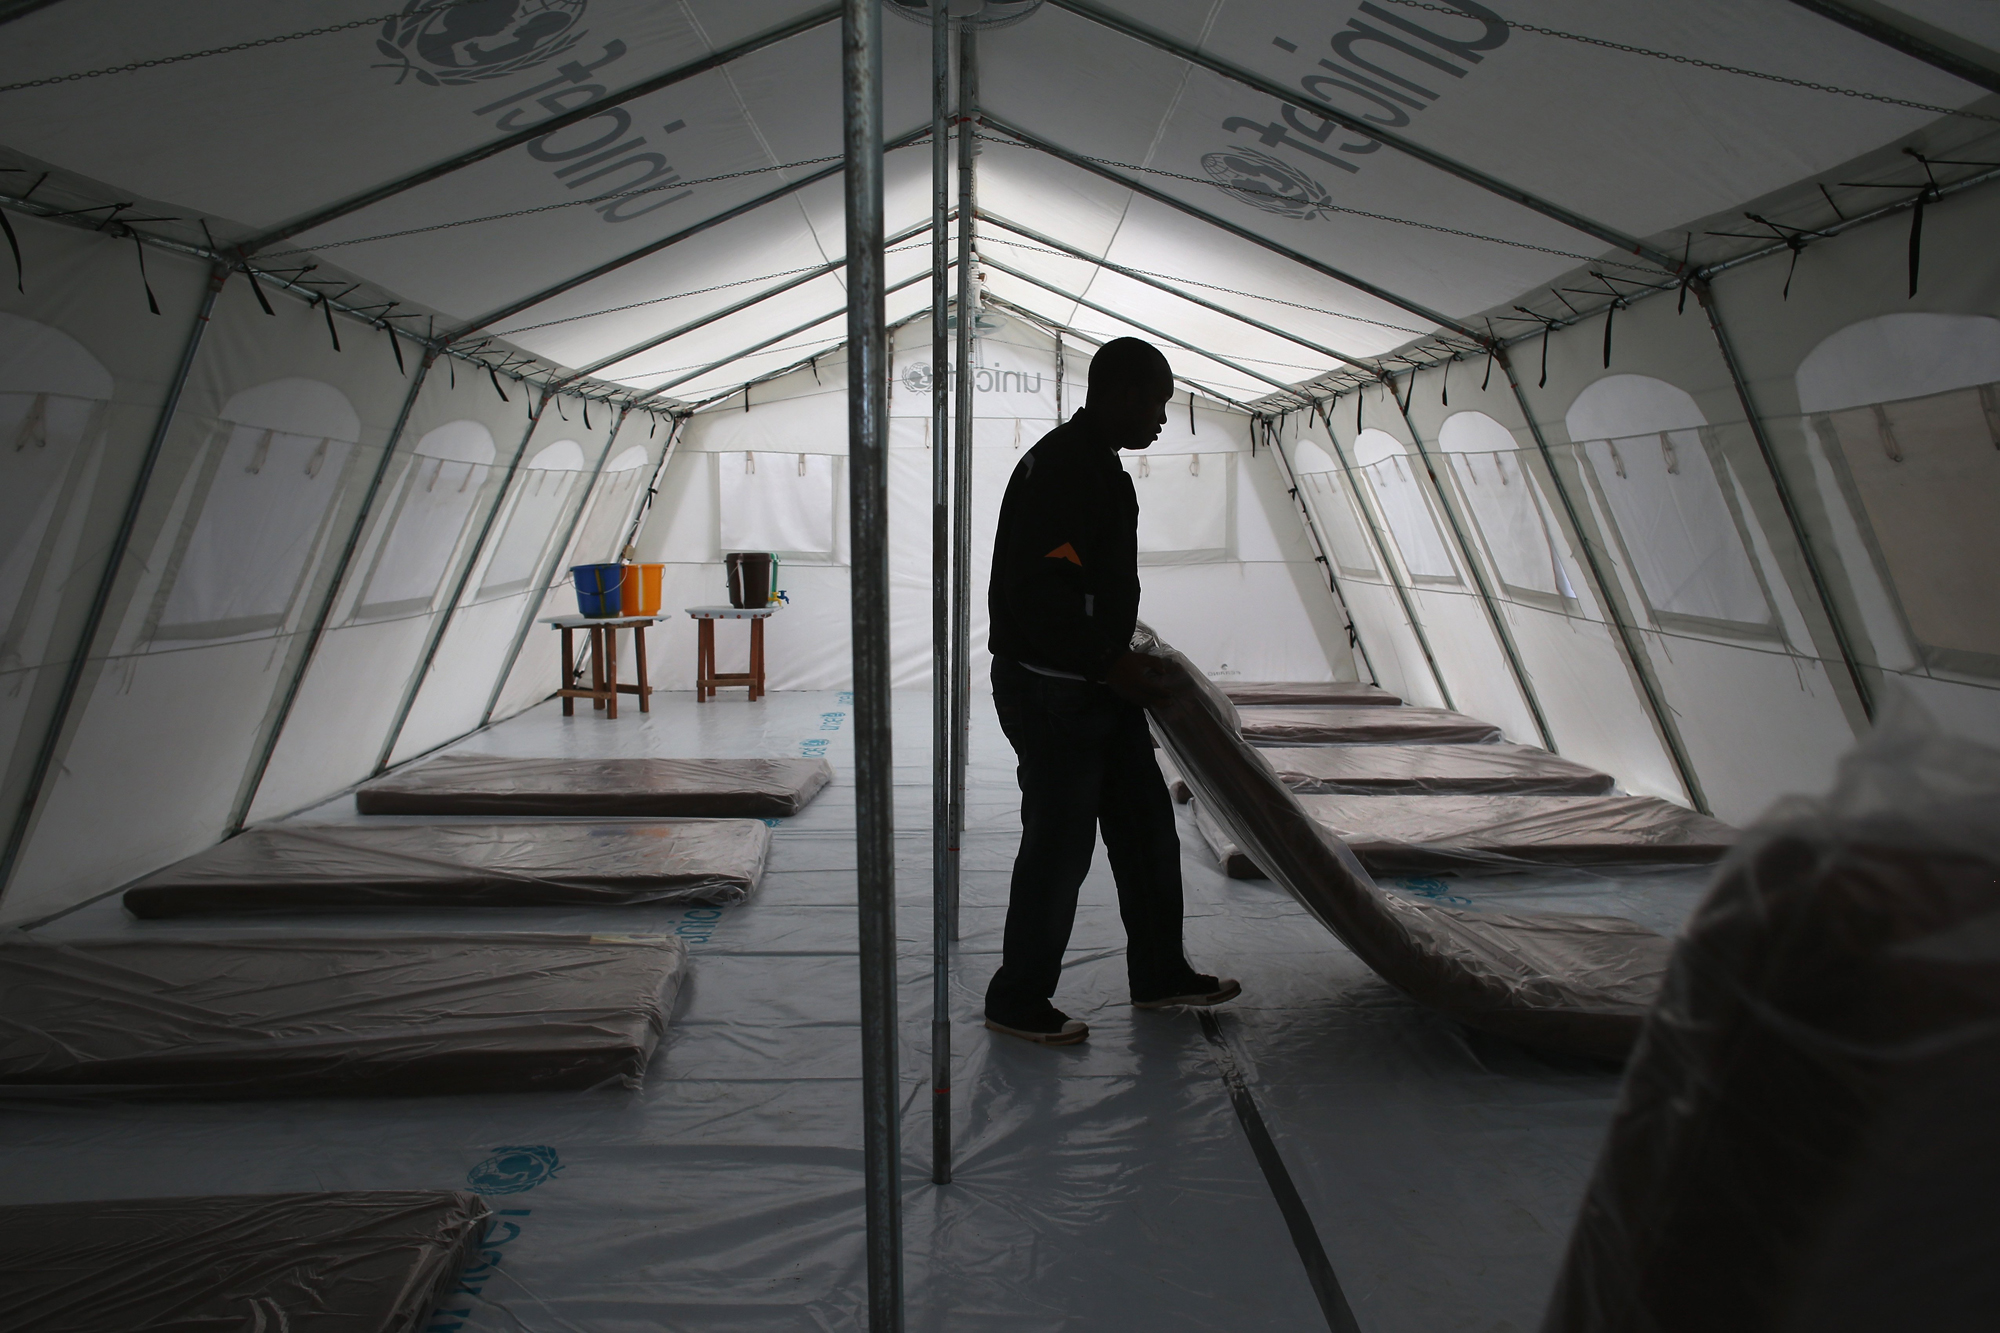 Workers prepare the new Doctors Without Borders, Ebola treatment center on Aug. 17, 2014 near Monrovia, Liberia. Tents at the center were provided by UNICEF.